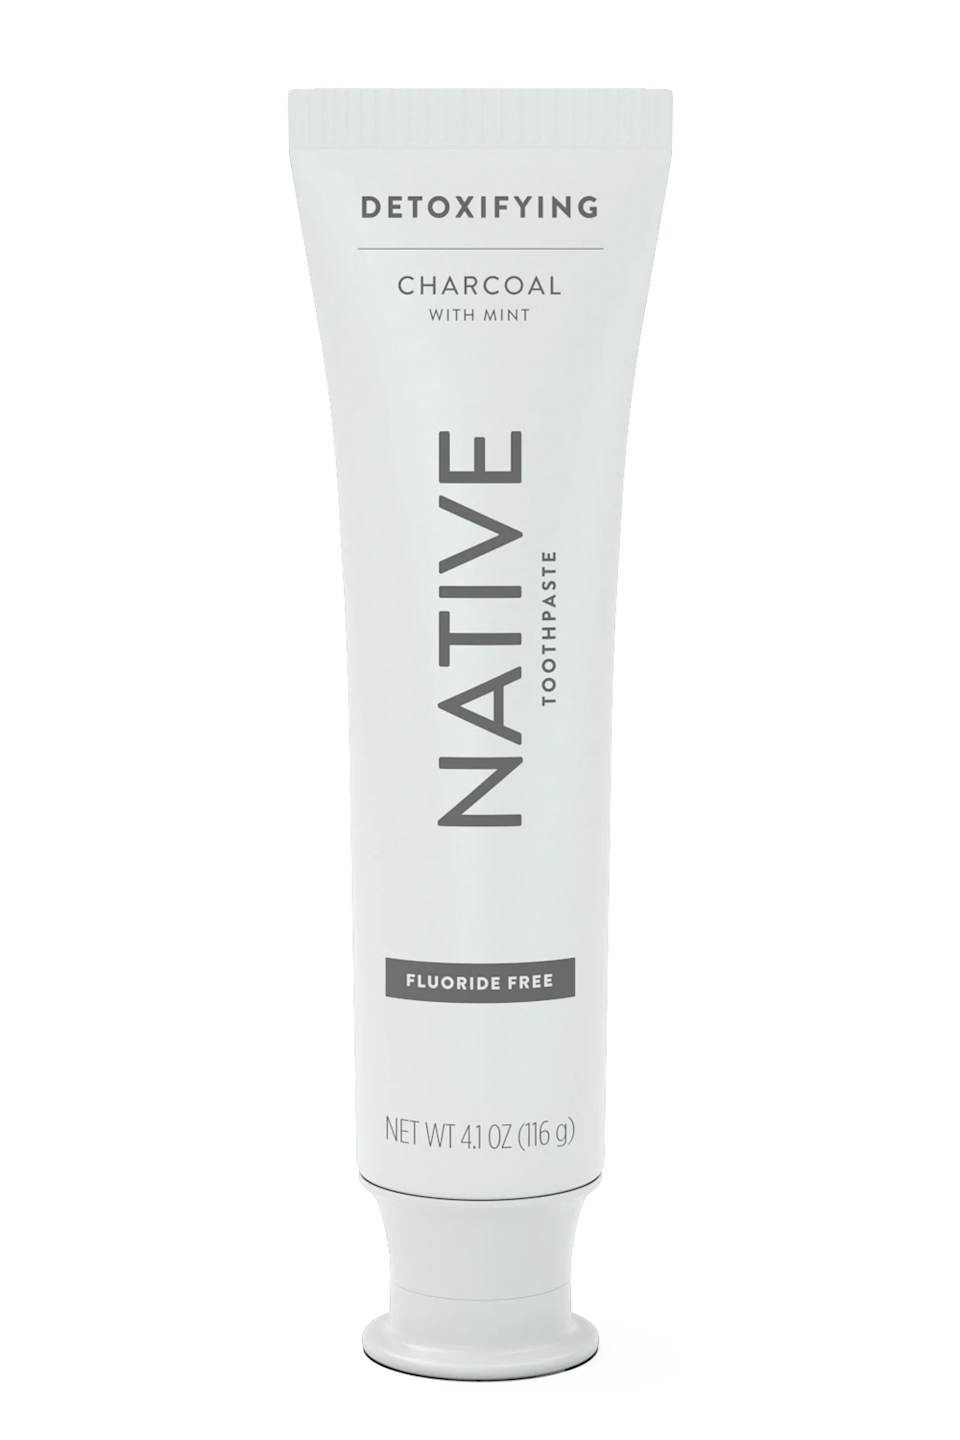 """<p><strong>Native</strong></p><p>target.com</p><p><strong>$9.99</strong></p><p><a href=""""https://www.target.com/p/native-charcoal-with-mint-fluoride-toothpaste-4-1-oz/-/A-76908539"""" rel=""""nofollow noopener"""" target=""""_blank"""" data-ylk=""""slk:Shop Now"""" class=""""link rapid-noclick-resp"""">Shop Now</a></p><p>You already know and love Native's <a href=""""https://www.cosmopolitan.com/style-beauty/beauty/g32291446/best-natural-deodorants-for-women/"""" rel=""""nofollow noopener"""" target=""""_blank"""" data-ylk=""""slk:natural deodorants"""" class=""""link rapid-noclick-resp"""">natural deodorants</a>, but have you tried the brand's natural toothpaste? This formula doesn't contain sulfates but <em>does</em> contain a lot of ingredients Dr. Fung recommends, like <strong>fluoride, peppermint oil, stevia rebaudiana leaf extract, and xylitol</strong>. Another fun fact about xylitol is that it boosts the production of saliva, which helps prevent bacteria from sticking to teeth and maintains a neutral pH level in the mouth, says Dr. Fung. <br></p>"""